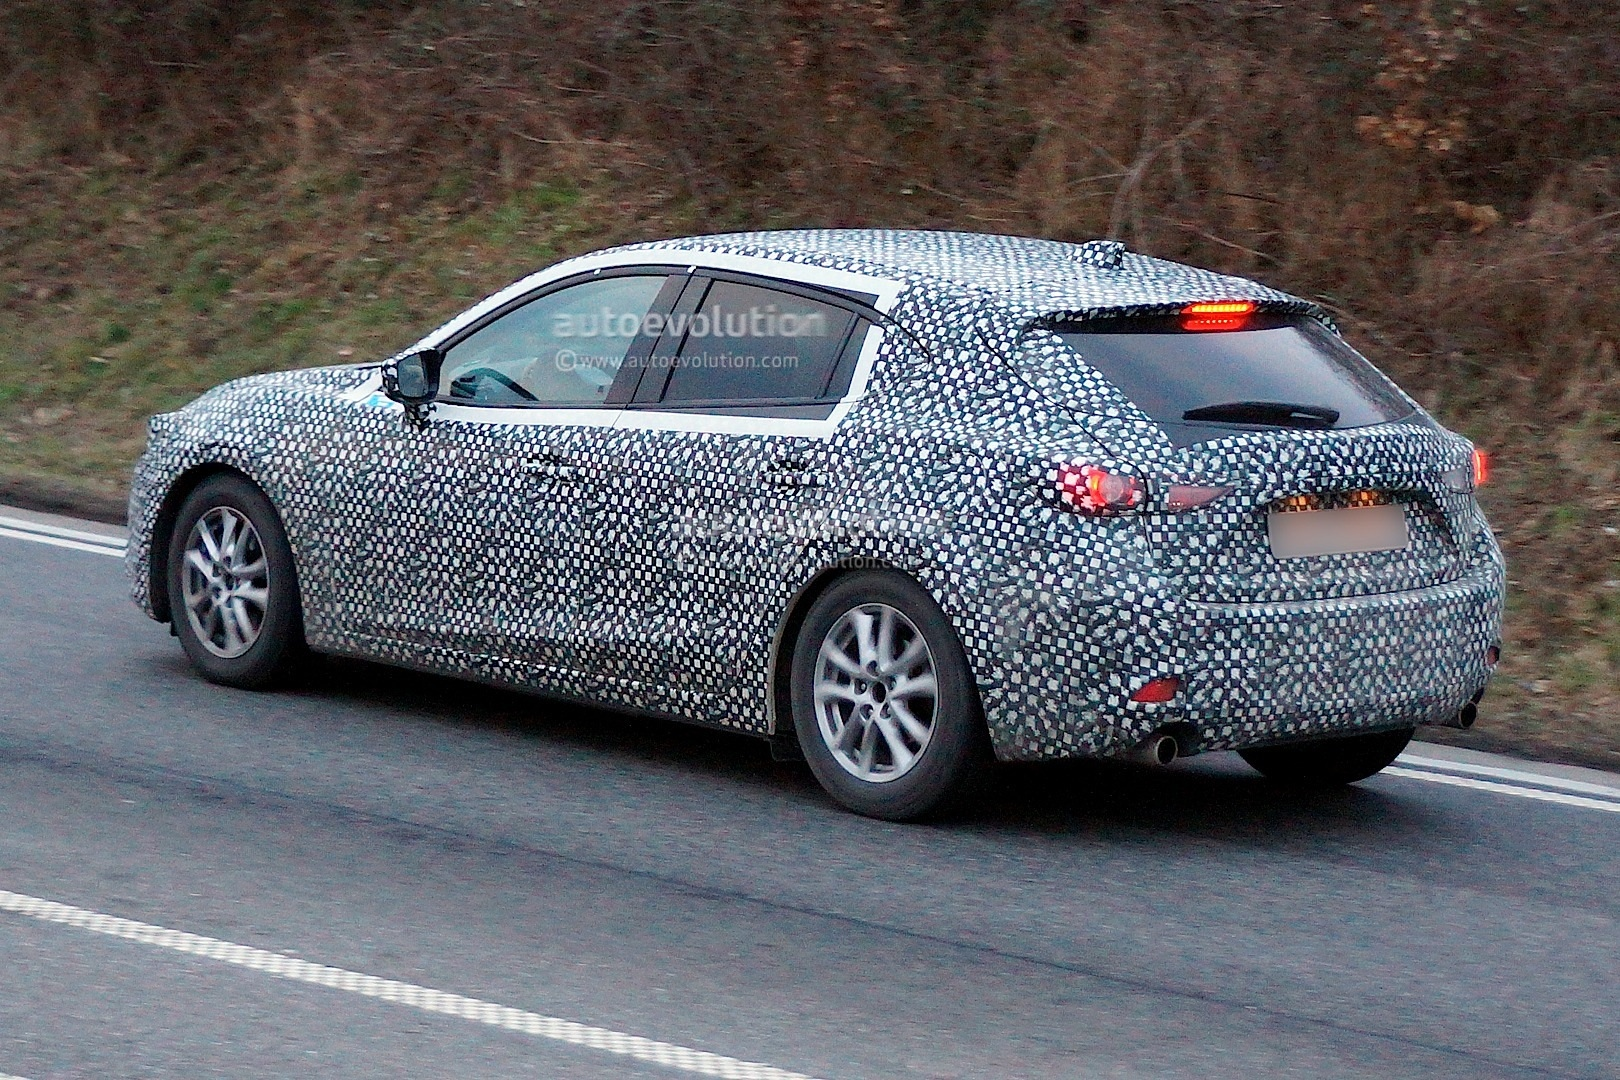 Spyshots 2014 Mazda3 Spotted For The First Time